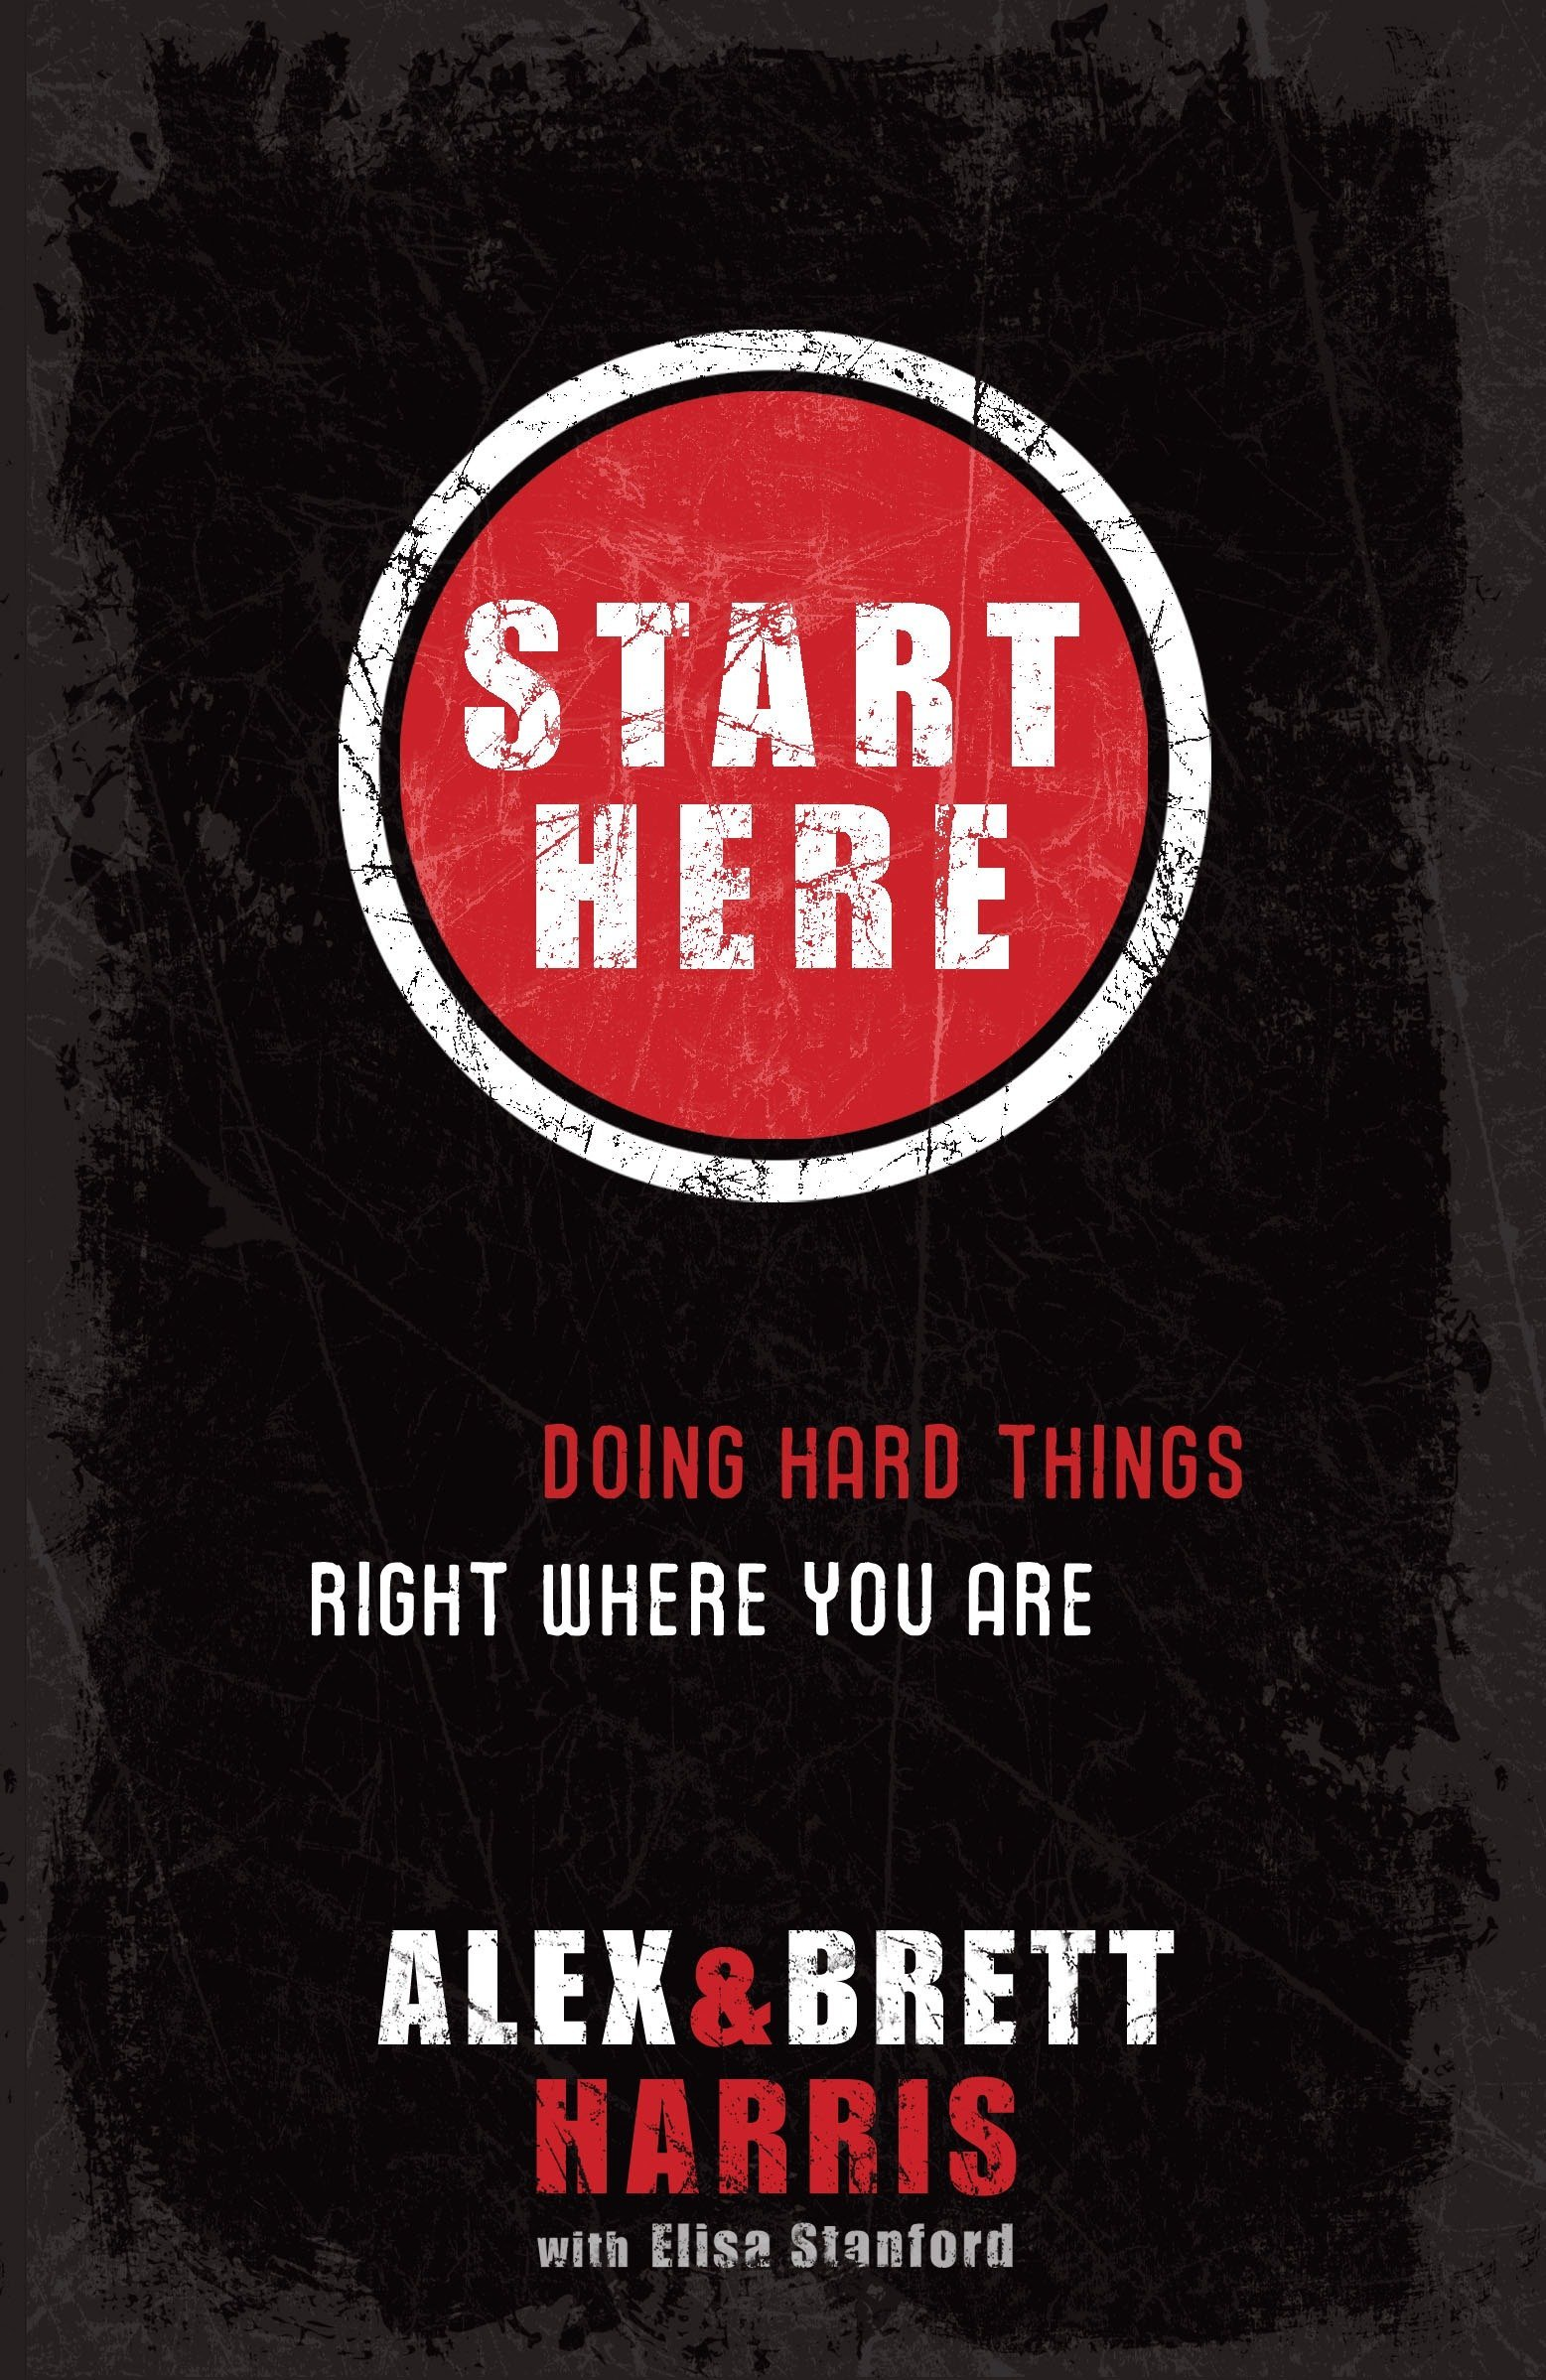 start here - doing hard things right where you are book cover